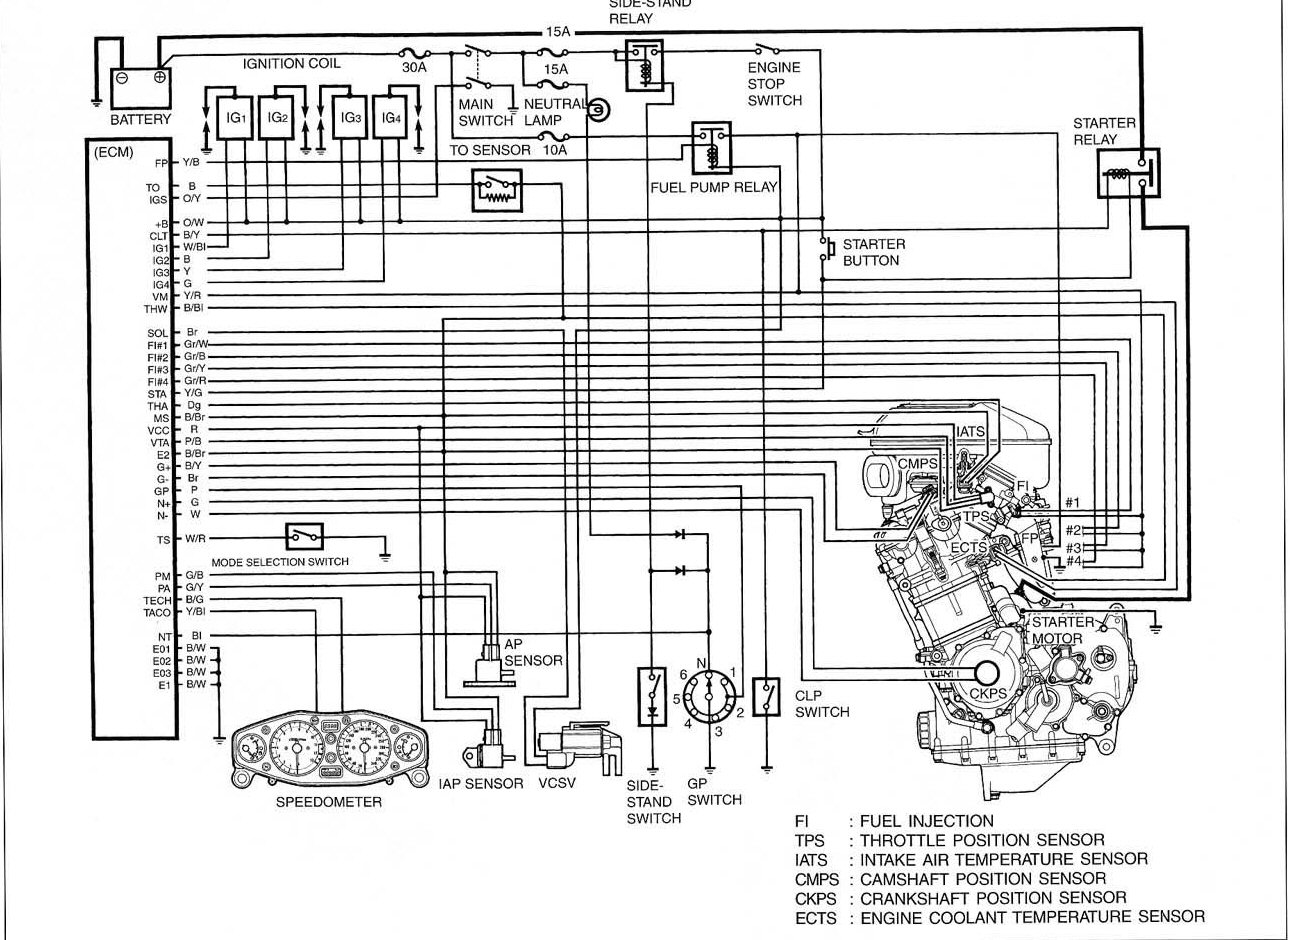 1999 suzuki hayabusa wiring diagram efcaviation com 2000 hayabusa wiring diagram at n-0.co